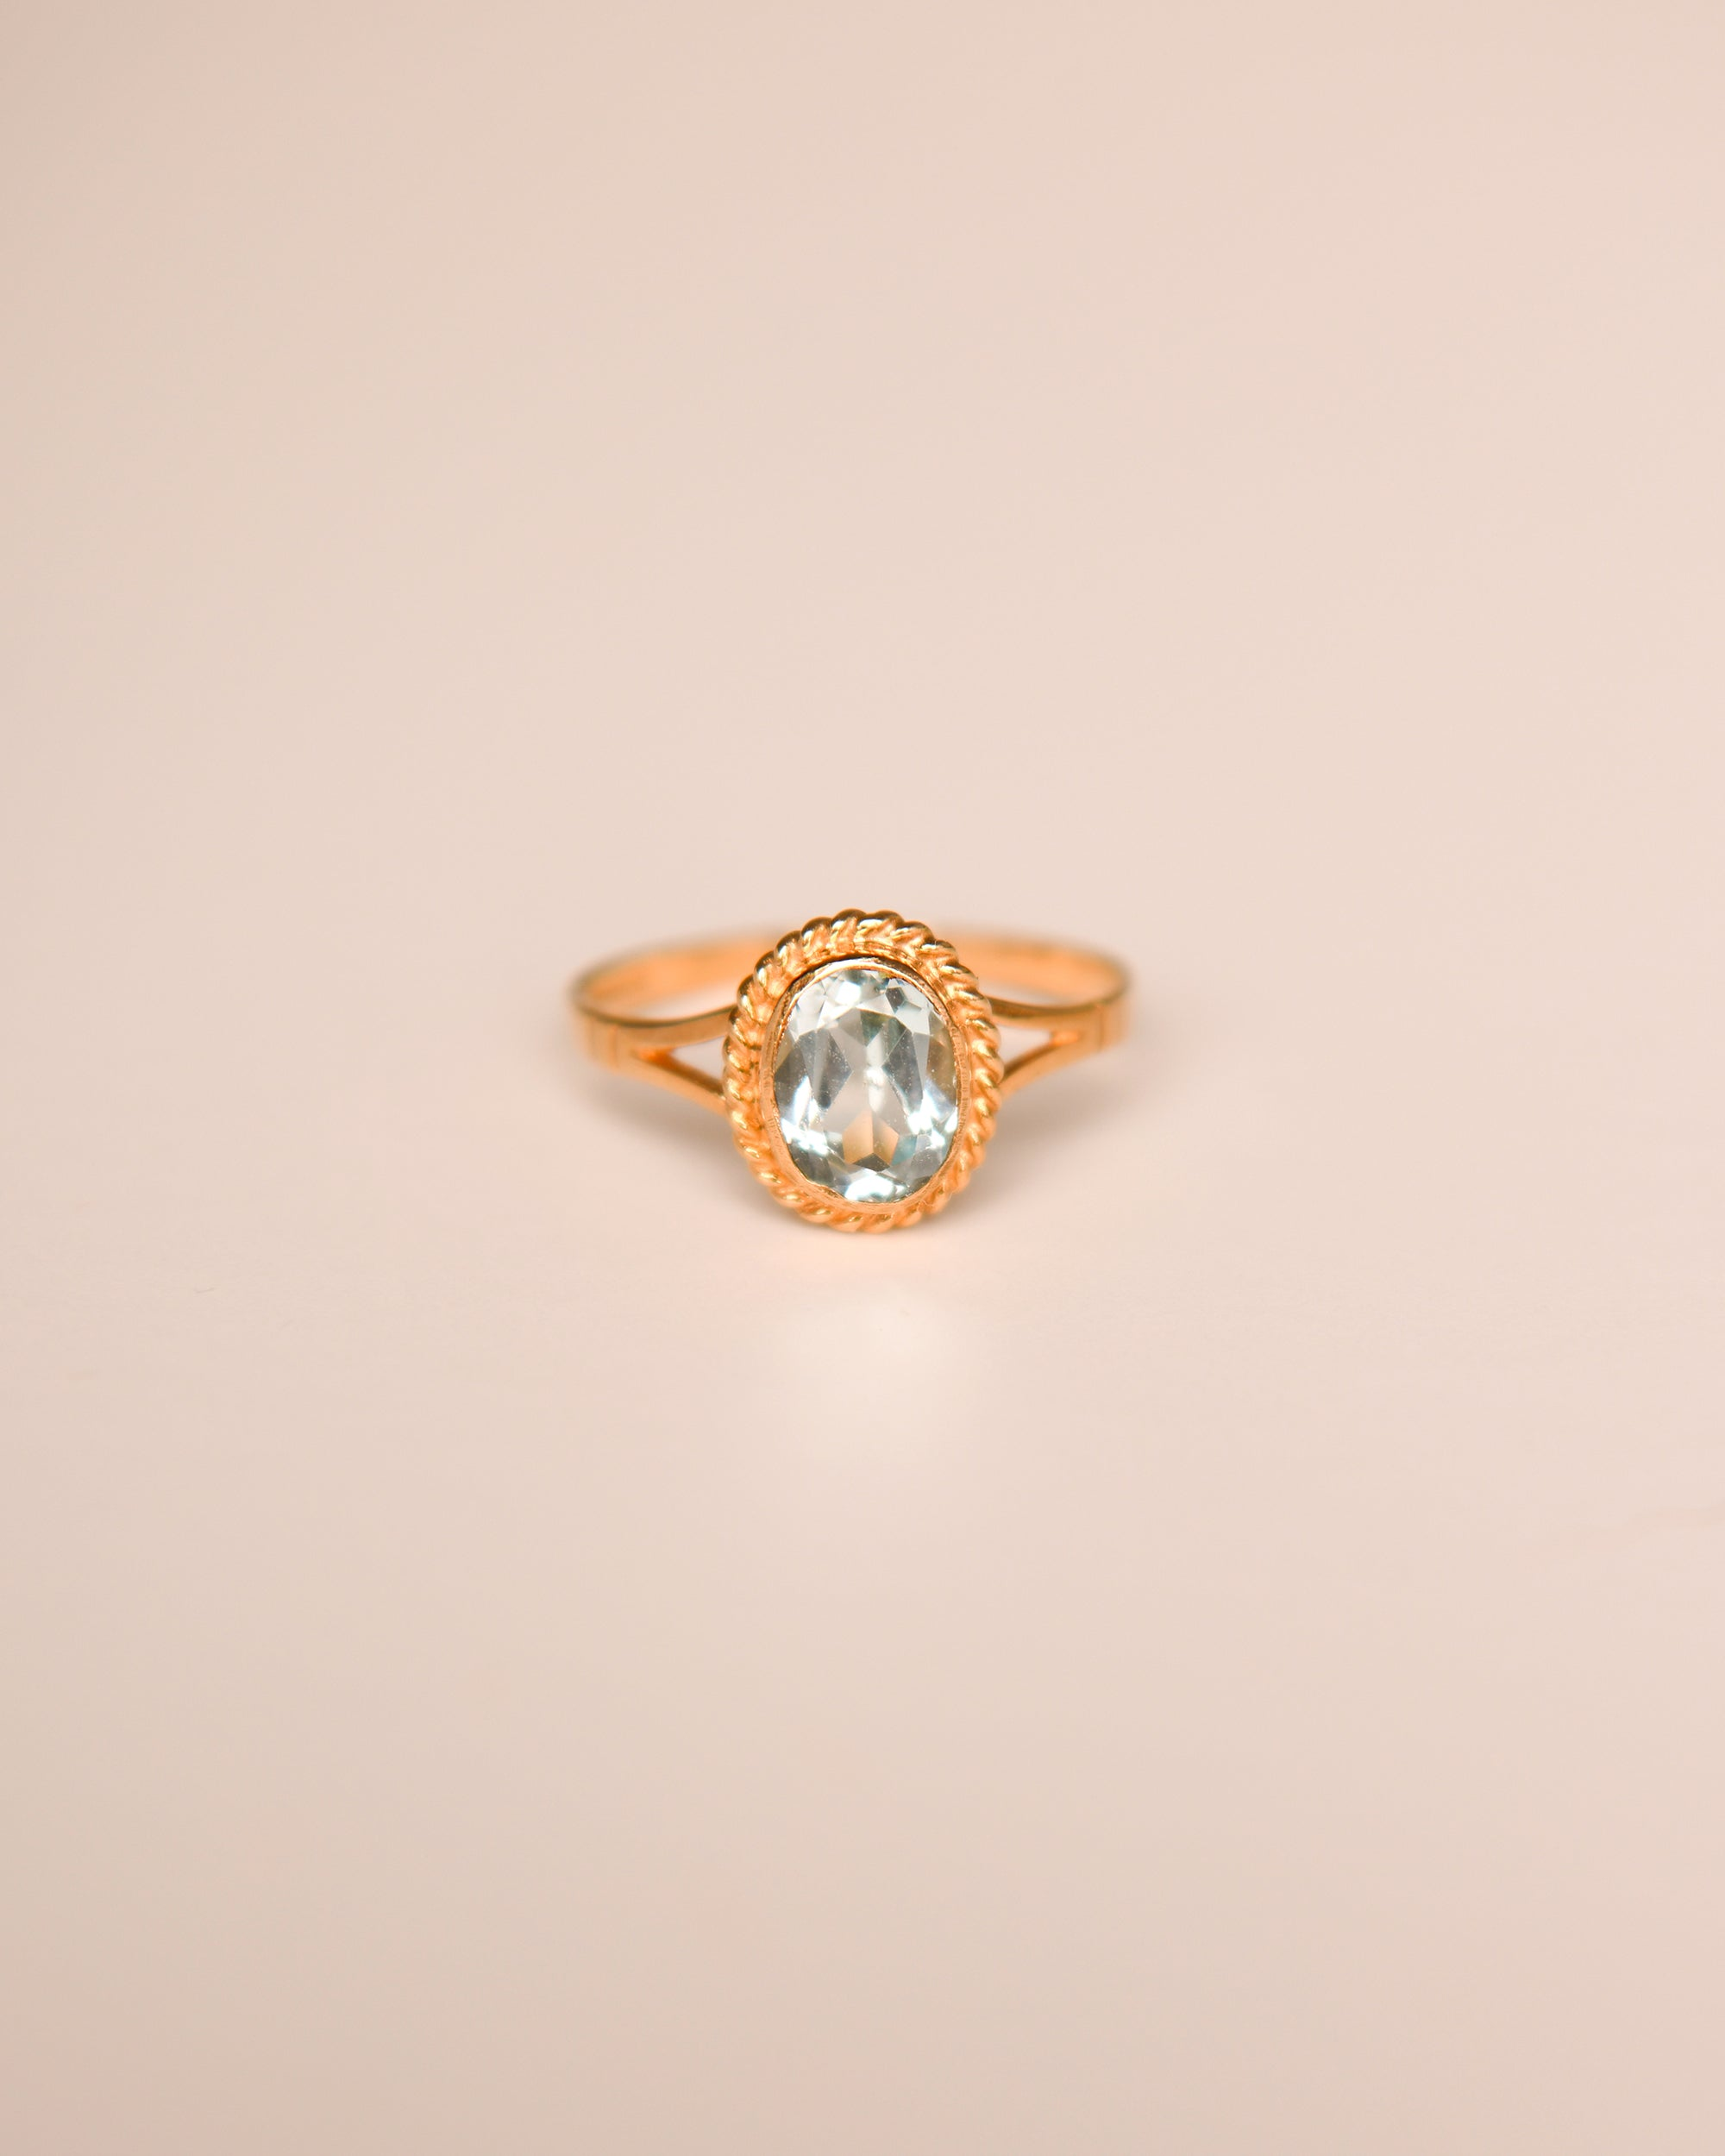 Image of Tabitha 9ct Gold Vintage Topaz Ring